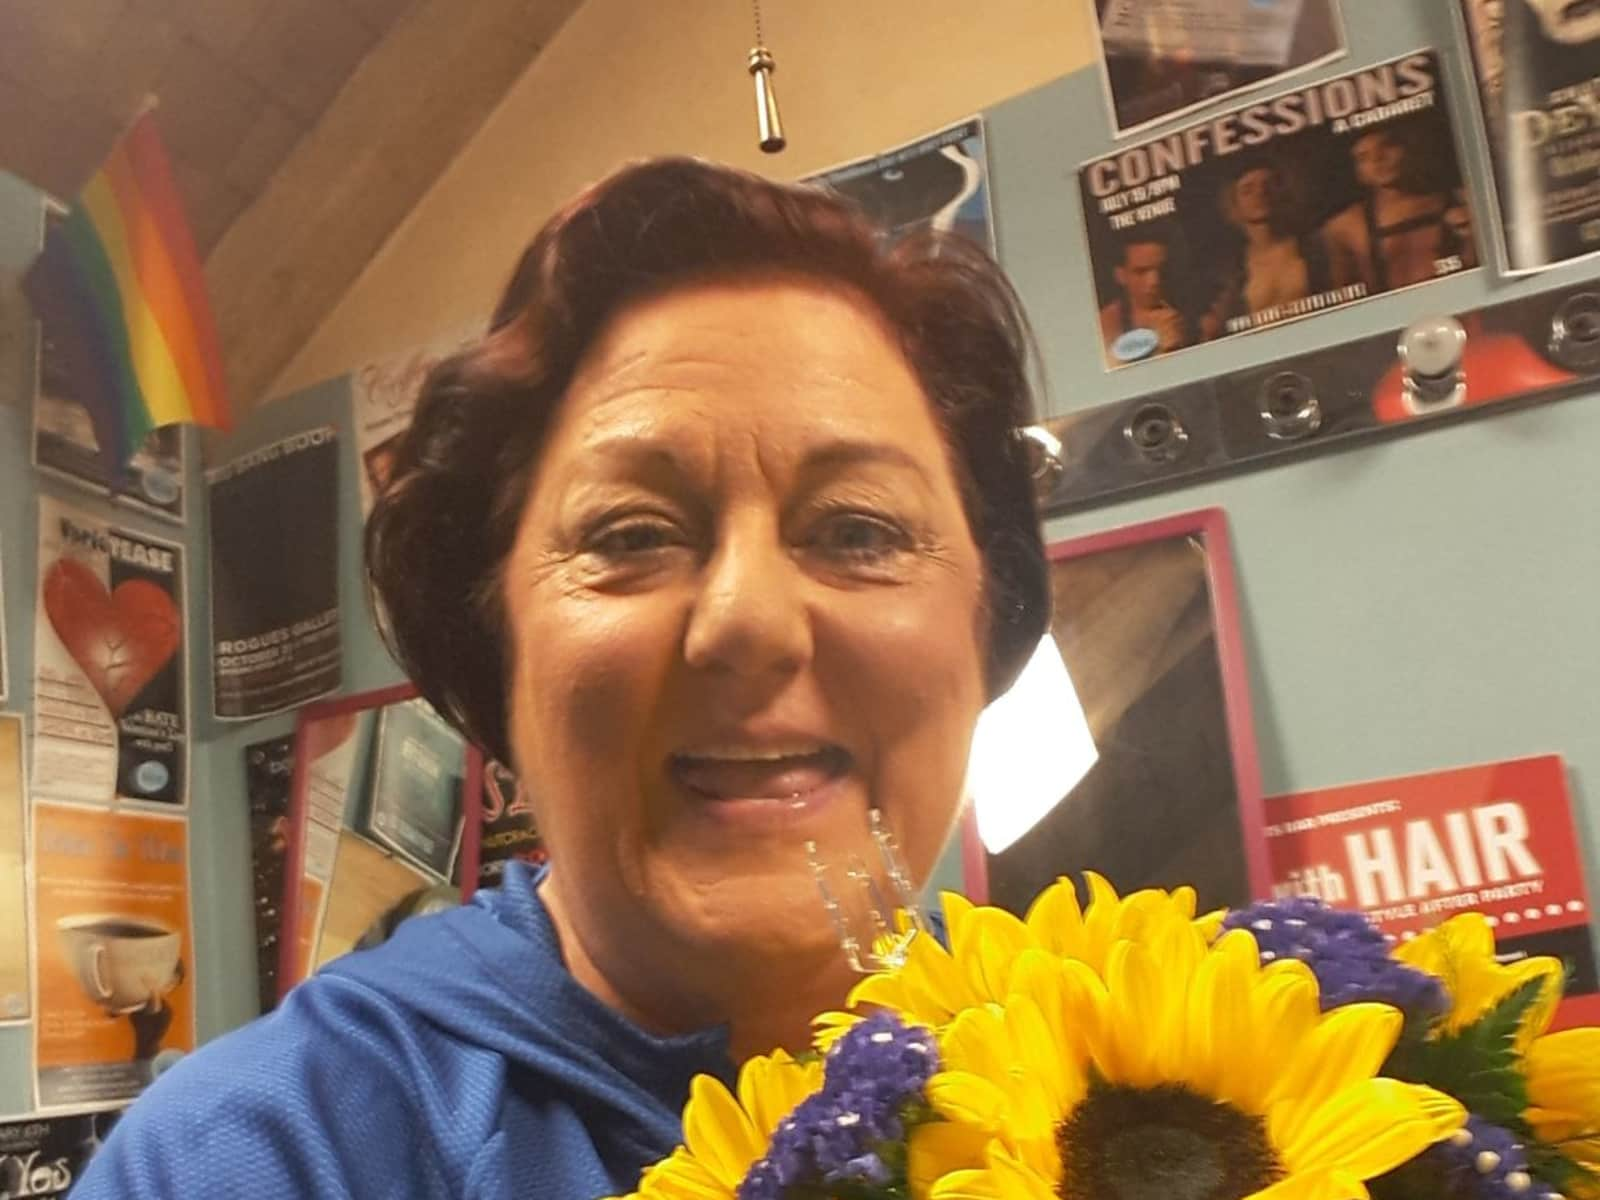 Cindy from Los Angeles, California, United States